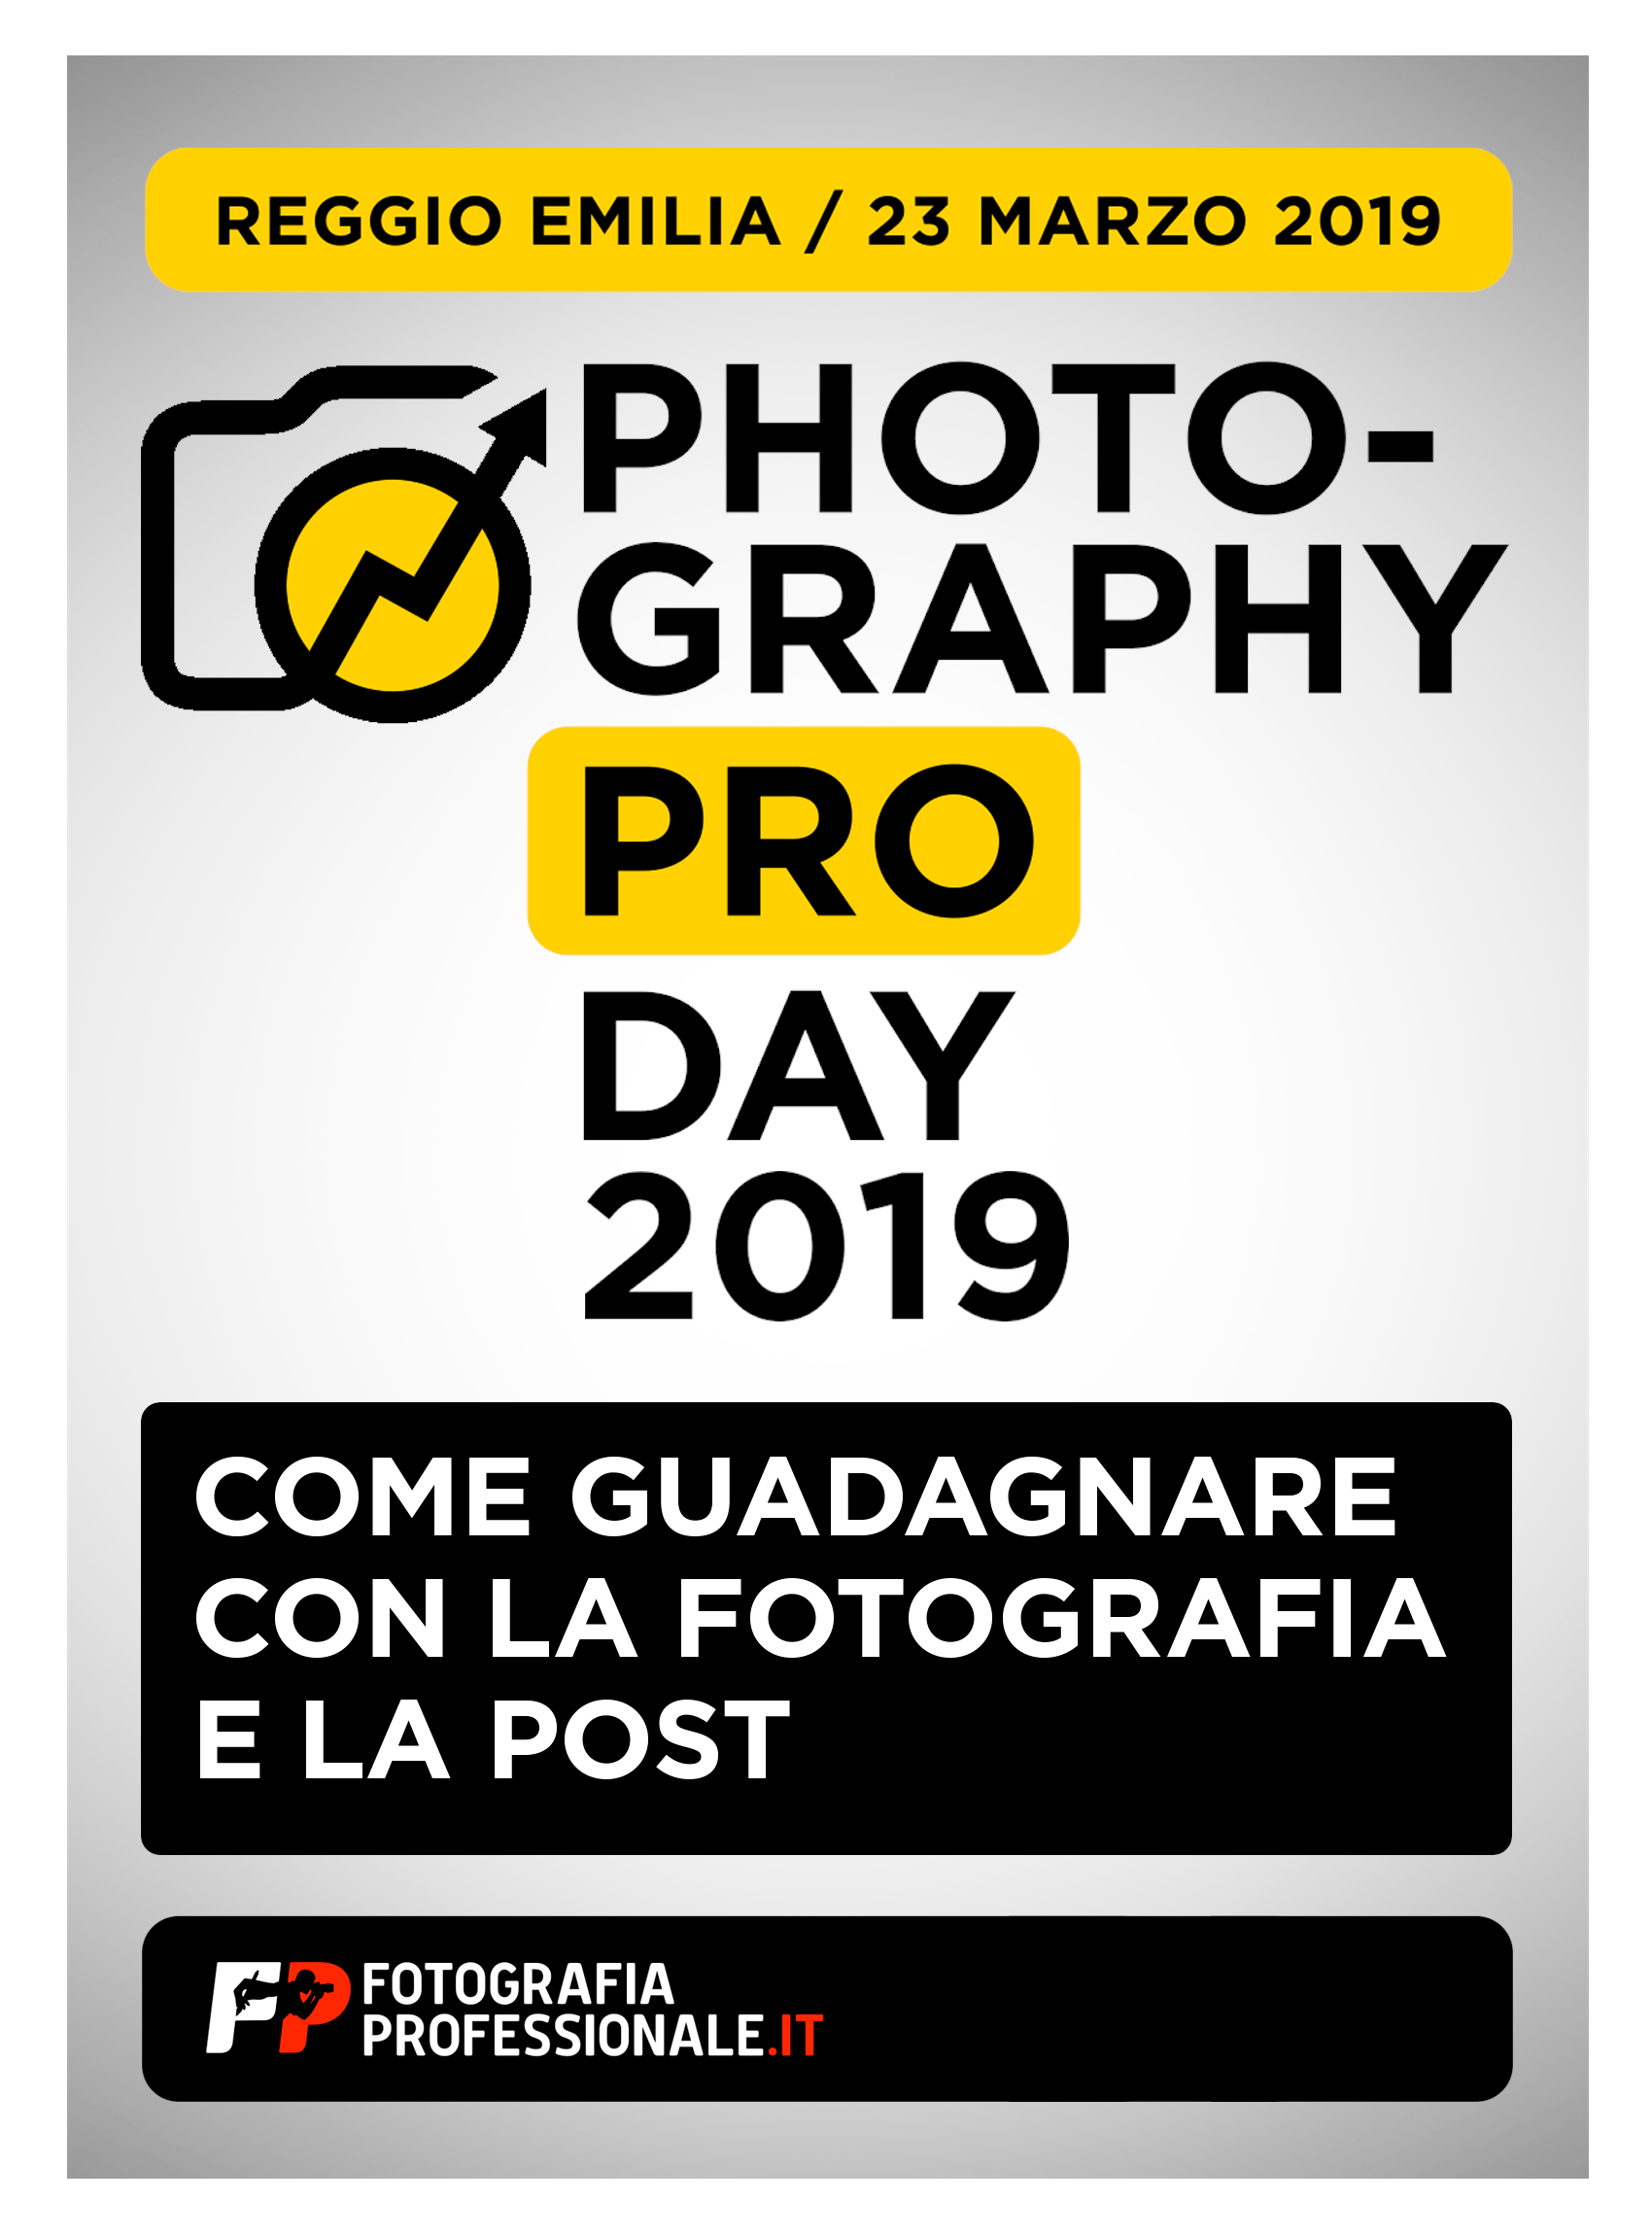 Photography PRO Day 2019